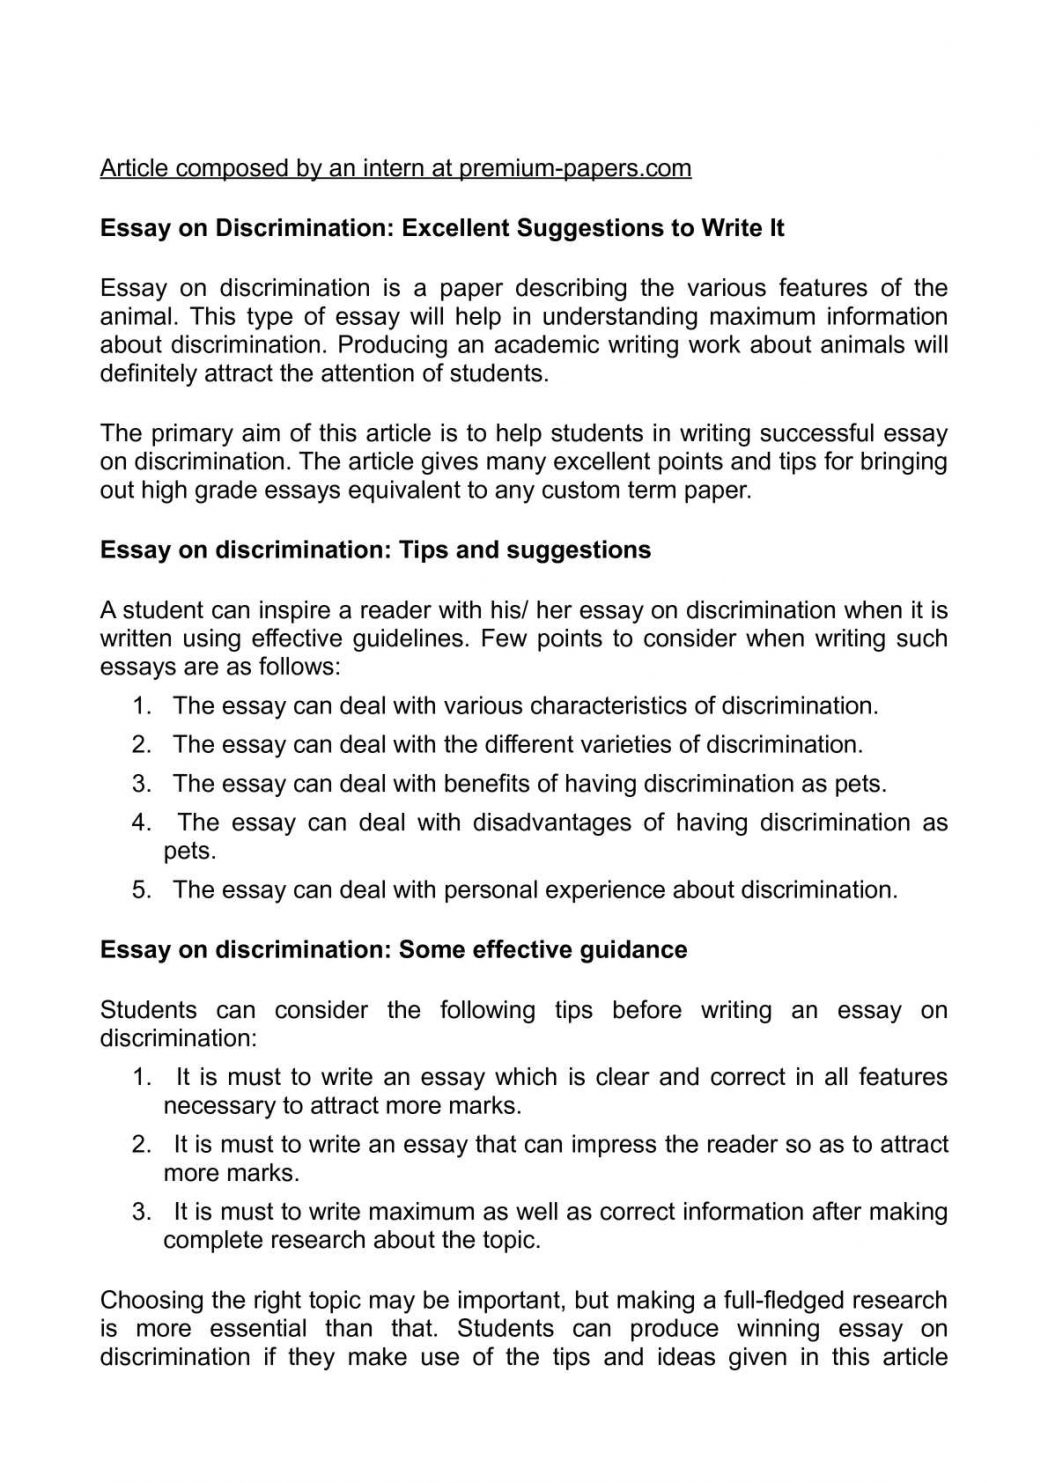 010 Essay On Discrimination Excellent Suggestions To Write It How An Prejudice And Racial Paper 1048x1483 Wonderful Kill A Mockingbird Title Theme Topics Full